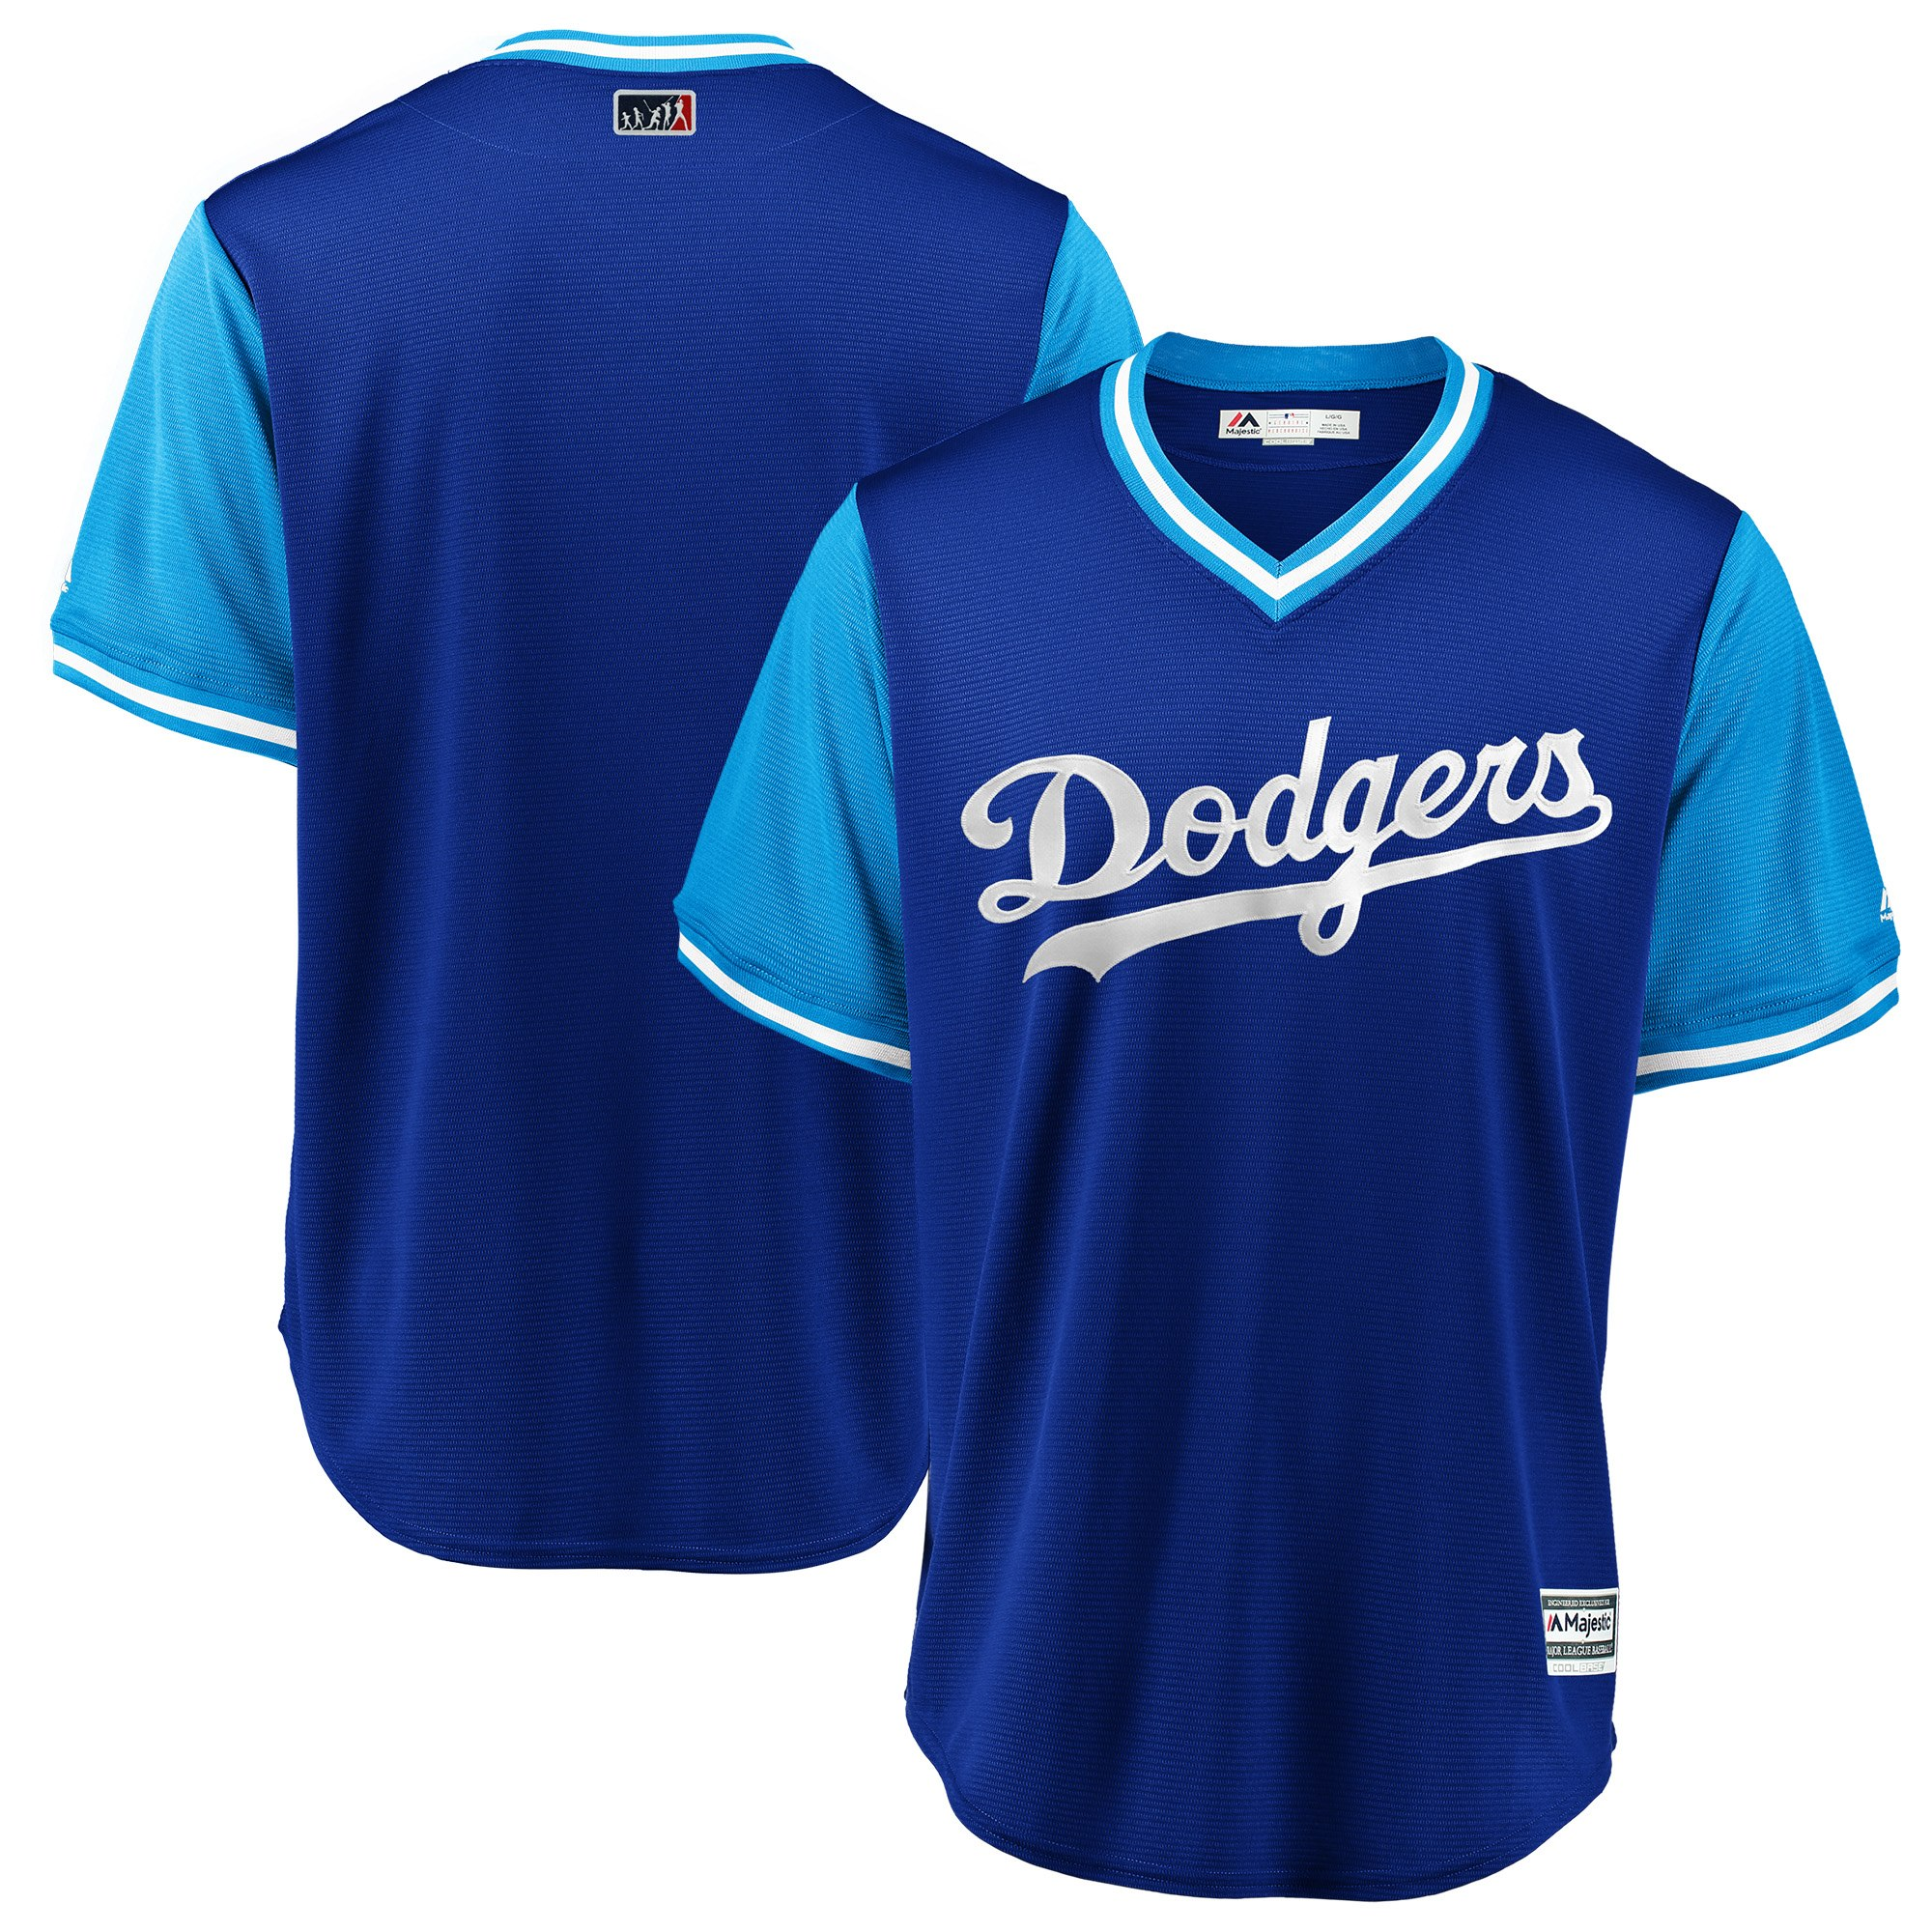 20e6117332c Los Angeles Dodgers Mens Jersey Majestic 2018 Players Weekend Royal Light  Blue